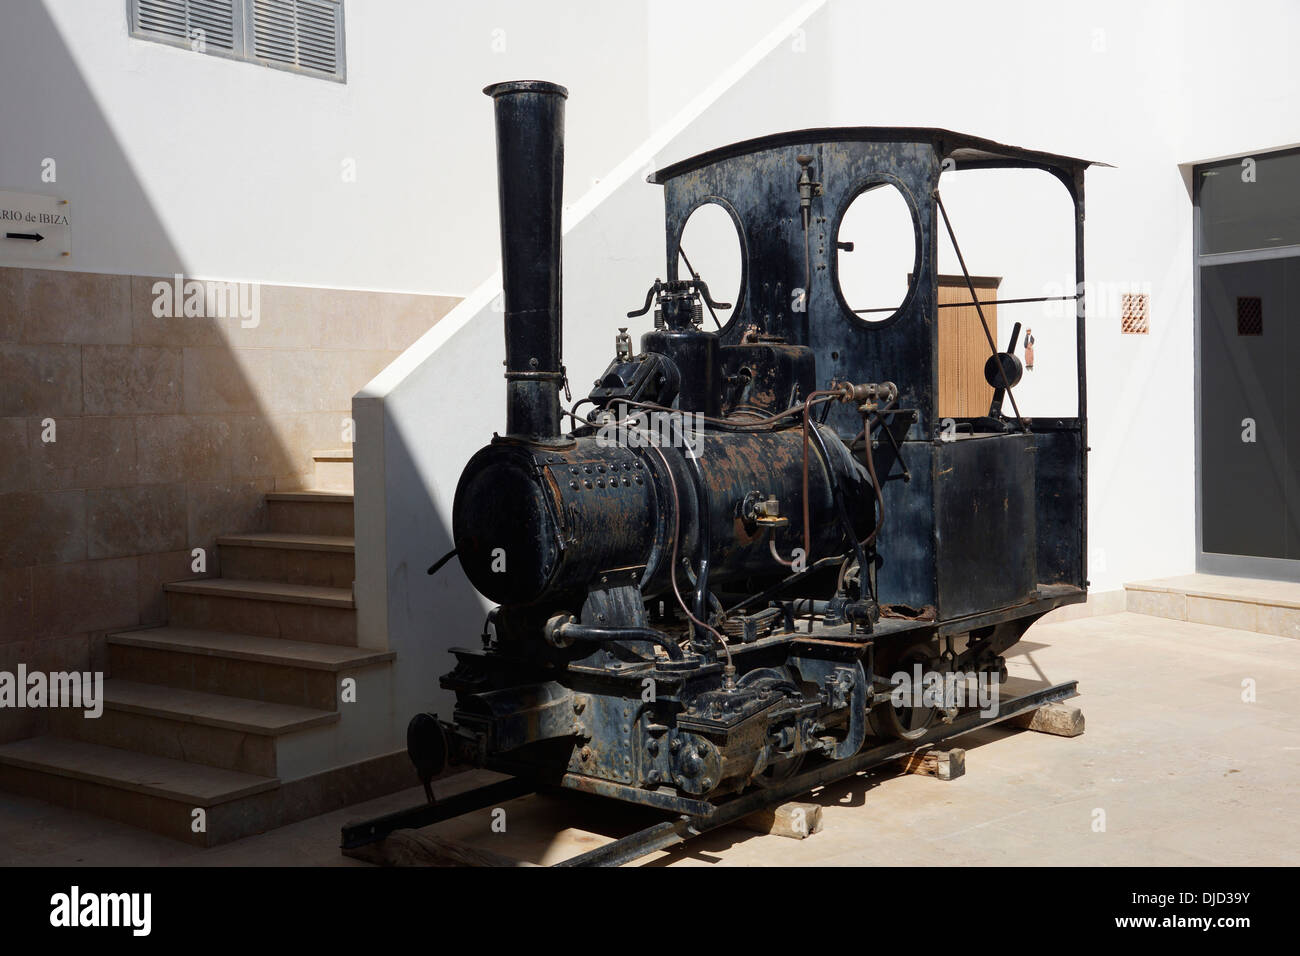 historic steam locomotive, used for agriculture, sant francesc de formentera, formentera, spain Stock Photo